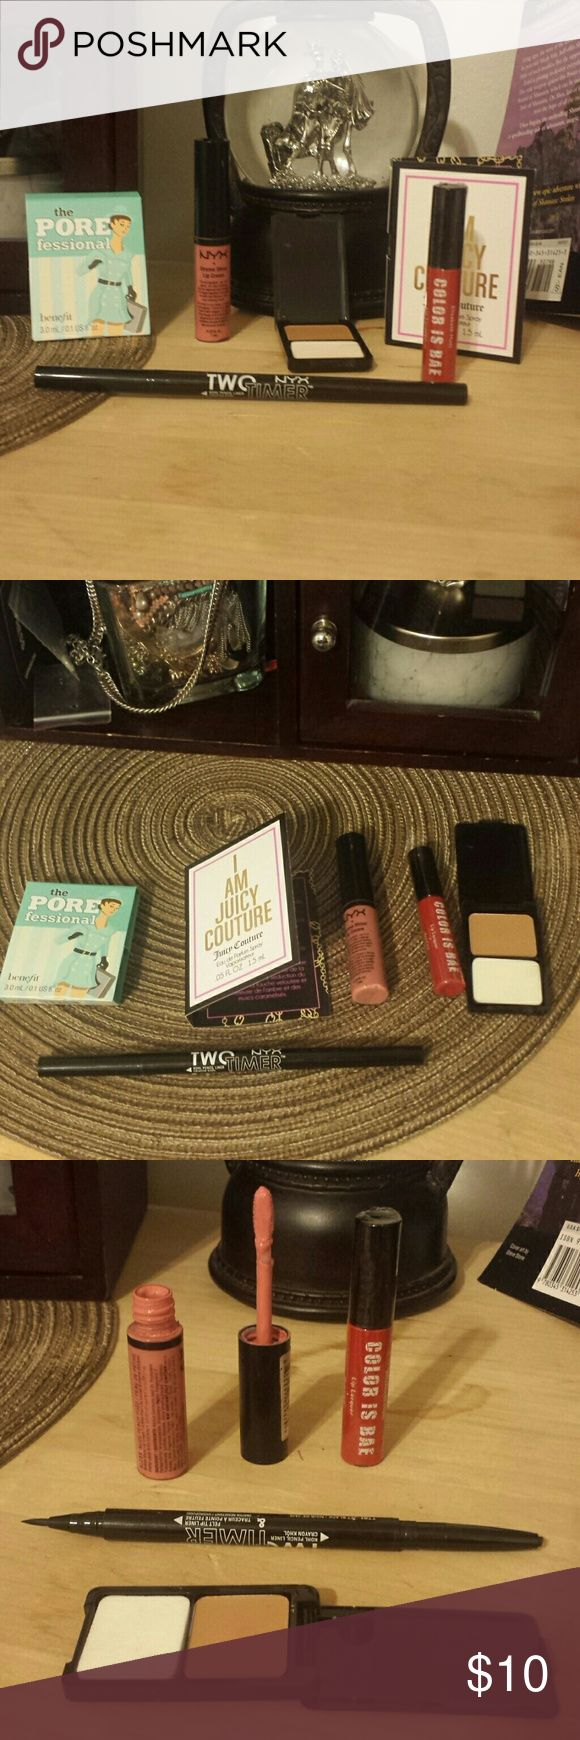 Makeup Bundle! Makeup bundle. NYX two timer eyeliner. One liquid one kohl pencil. Liquid side has not been used - I did use the kohl side twice (wiped off w/rubbing alcohol to sanitize.)  NYX Lip cream in nude peach fuzz.  Been used about 3 times but really not my color. And FREE sample of Elizabeth arden cream toasty beige foundation. Brand new red chili color Elizabeth Mott lip lacquer and a free sample of benefit pore professional and a free sample of juicy perfume. DO NOT BUY IF U DON'T…